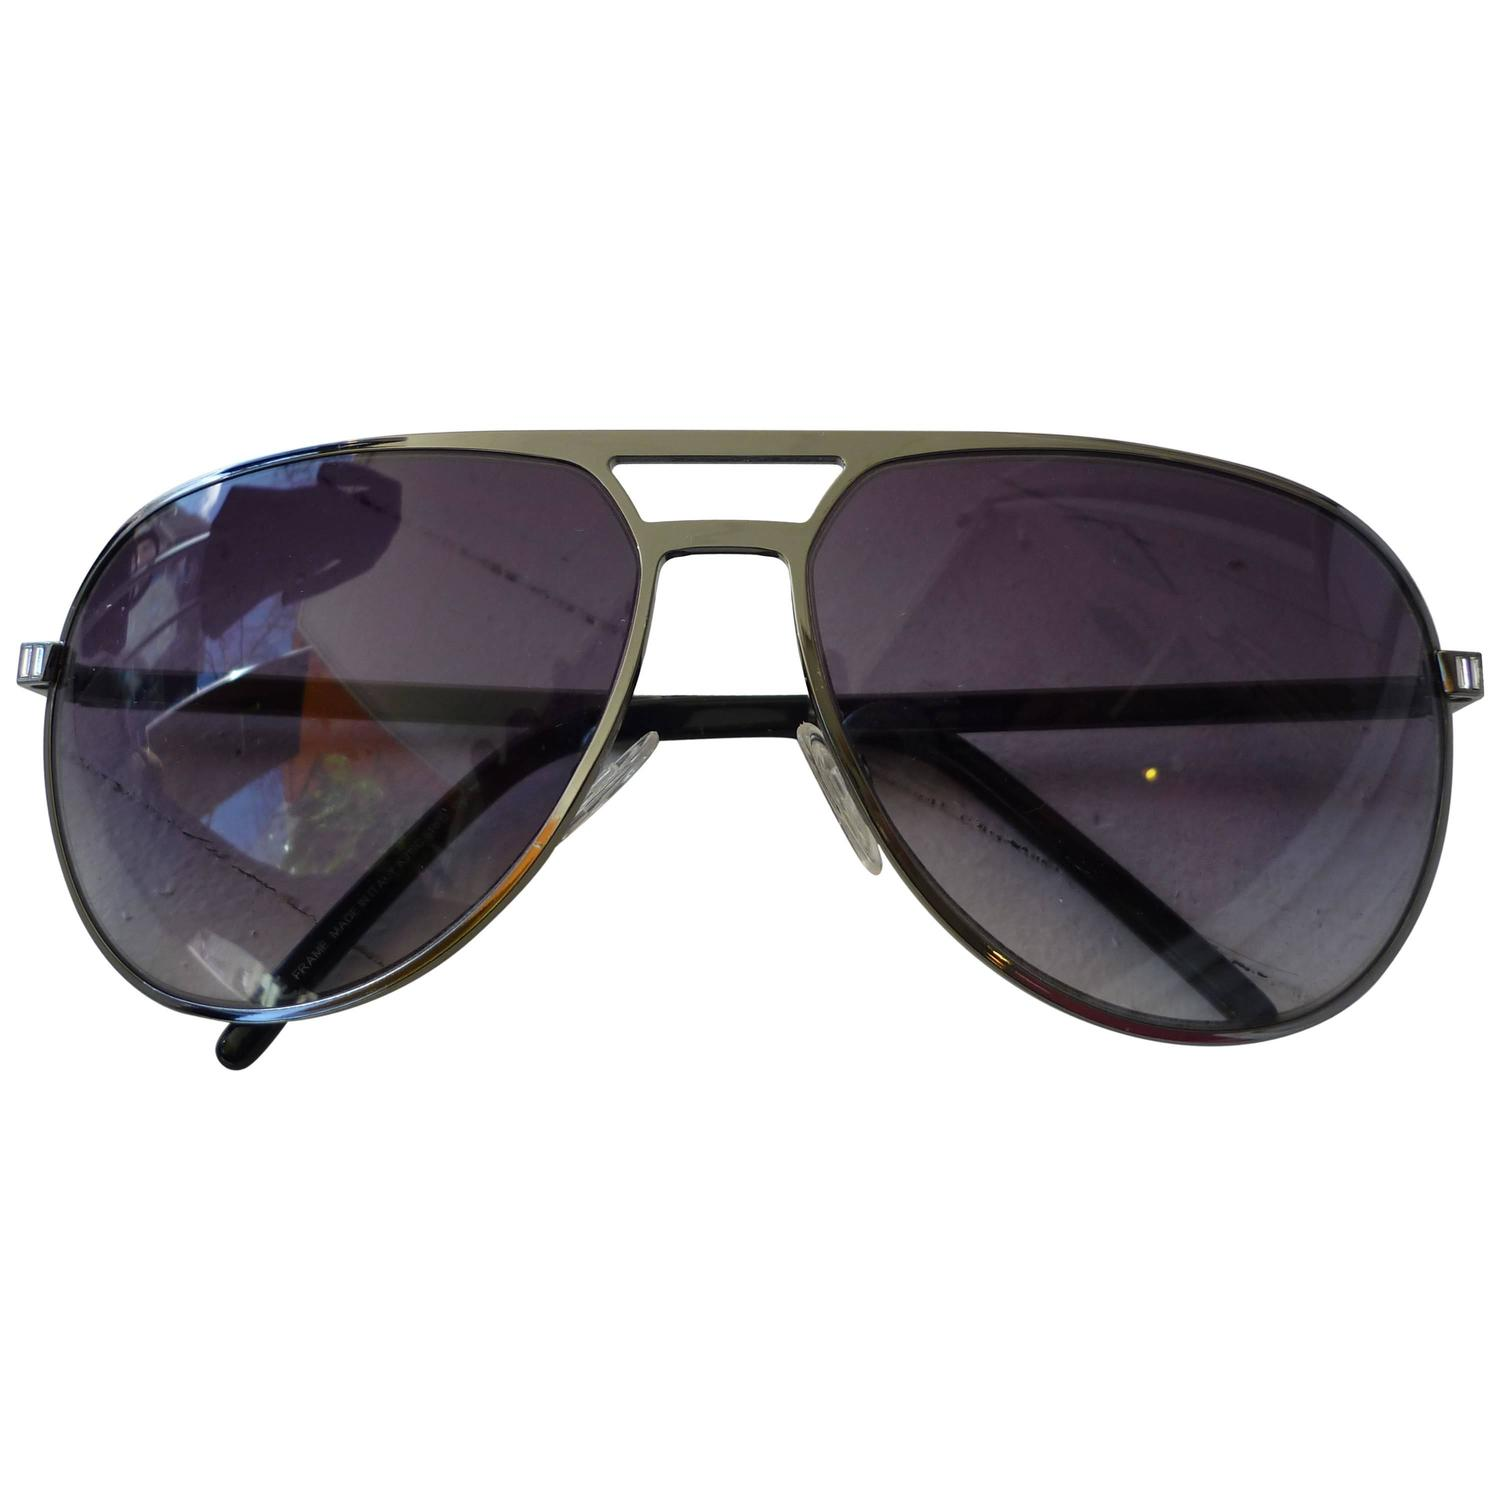 46956710f1 Christian Dior Mini Aviator Sunglasses